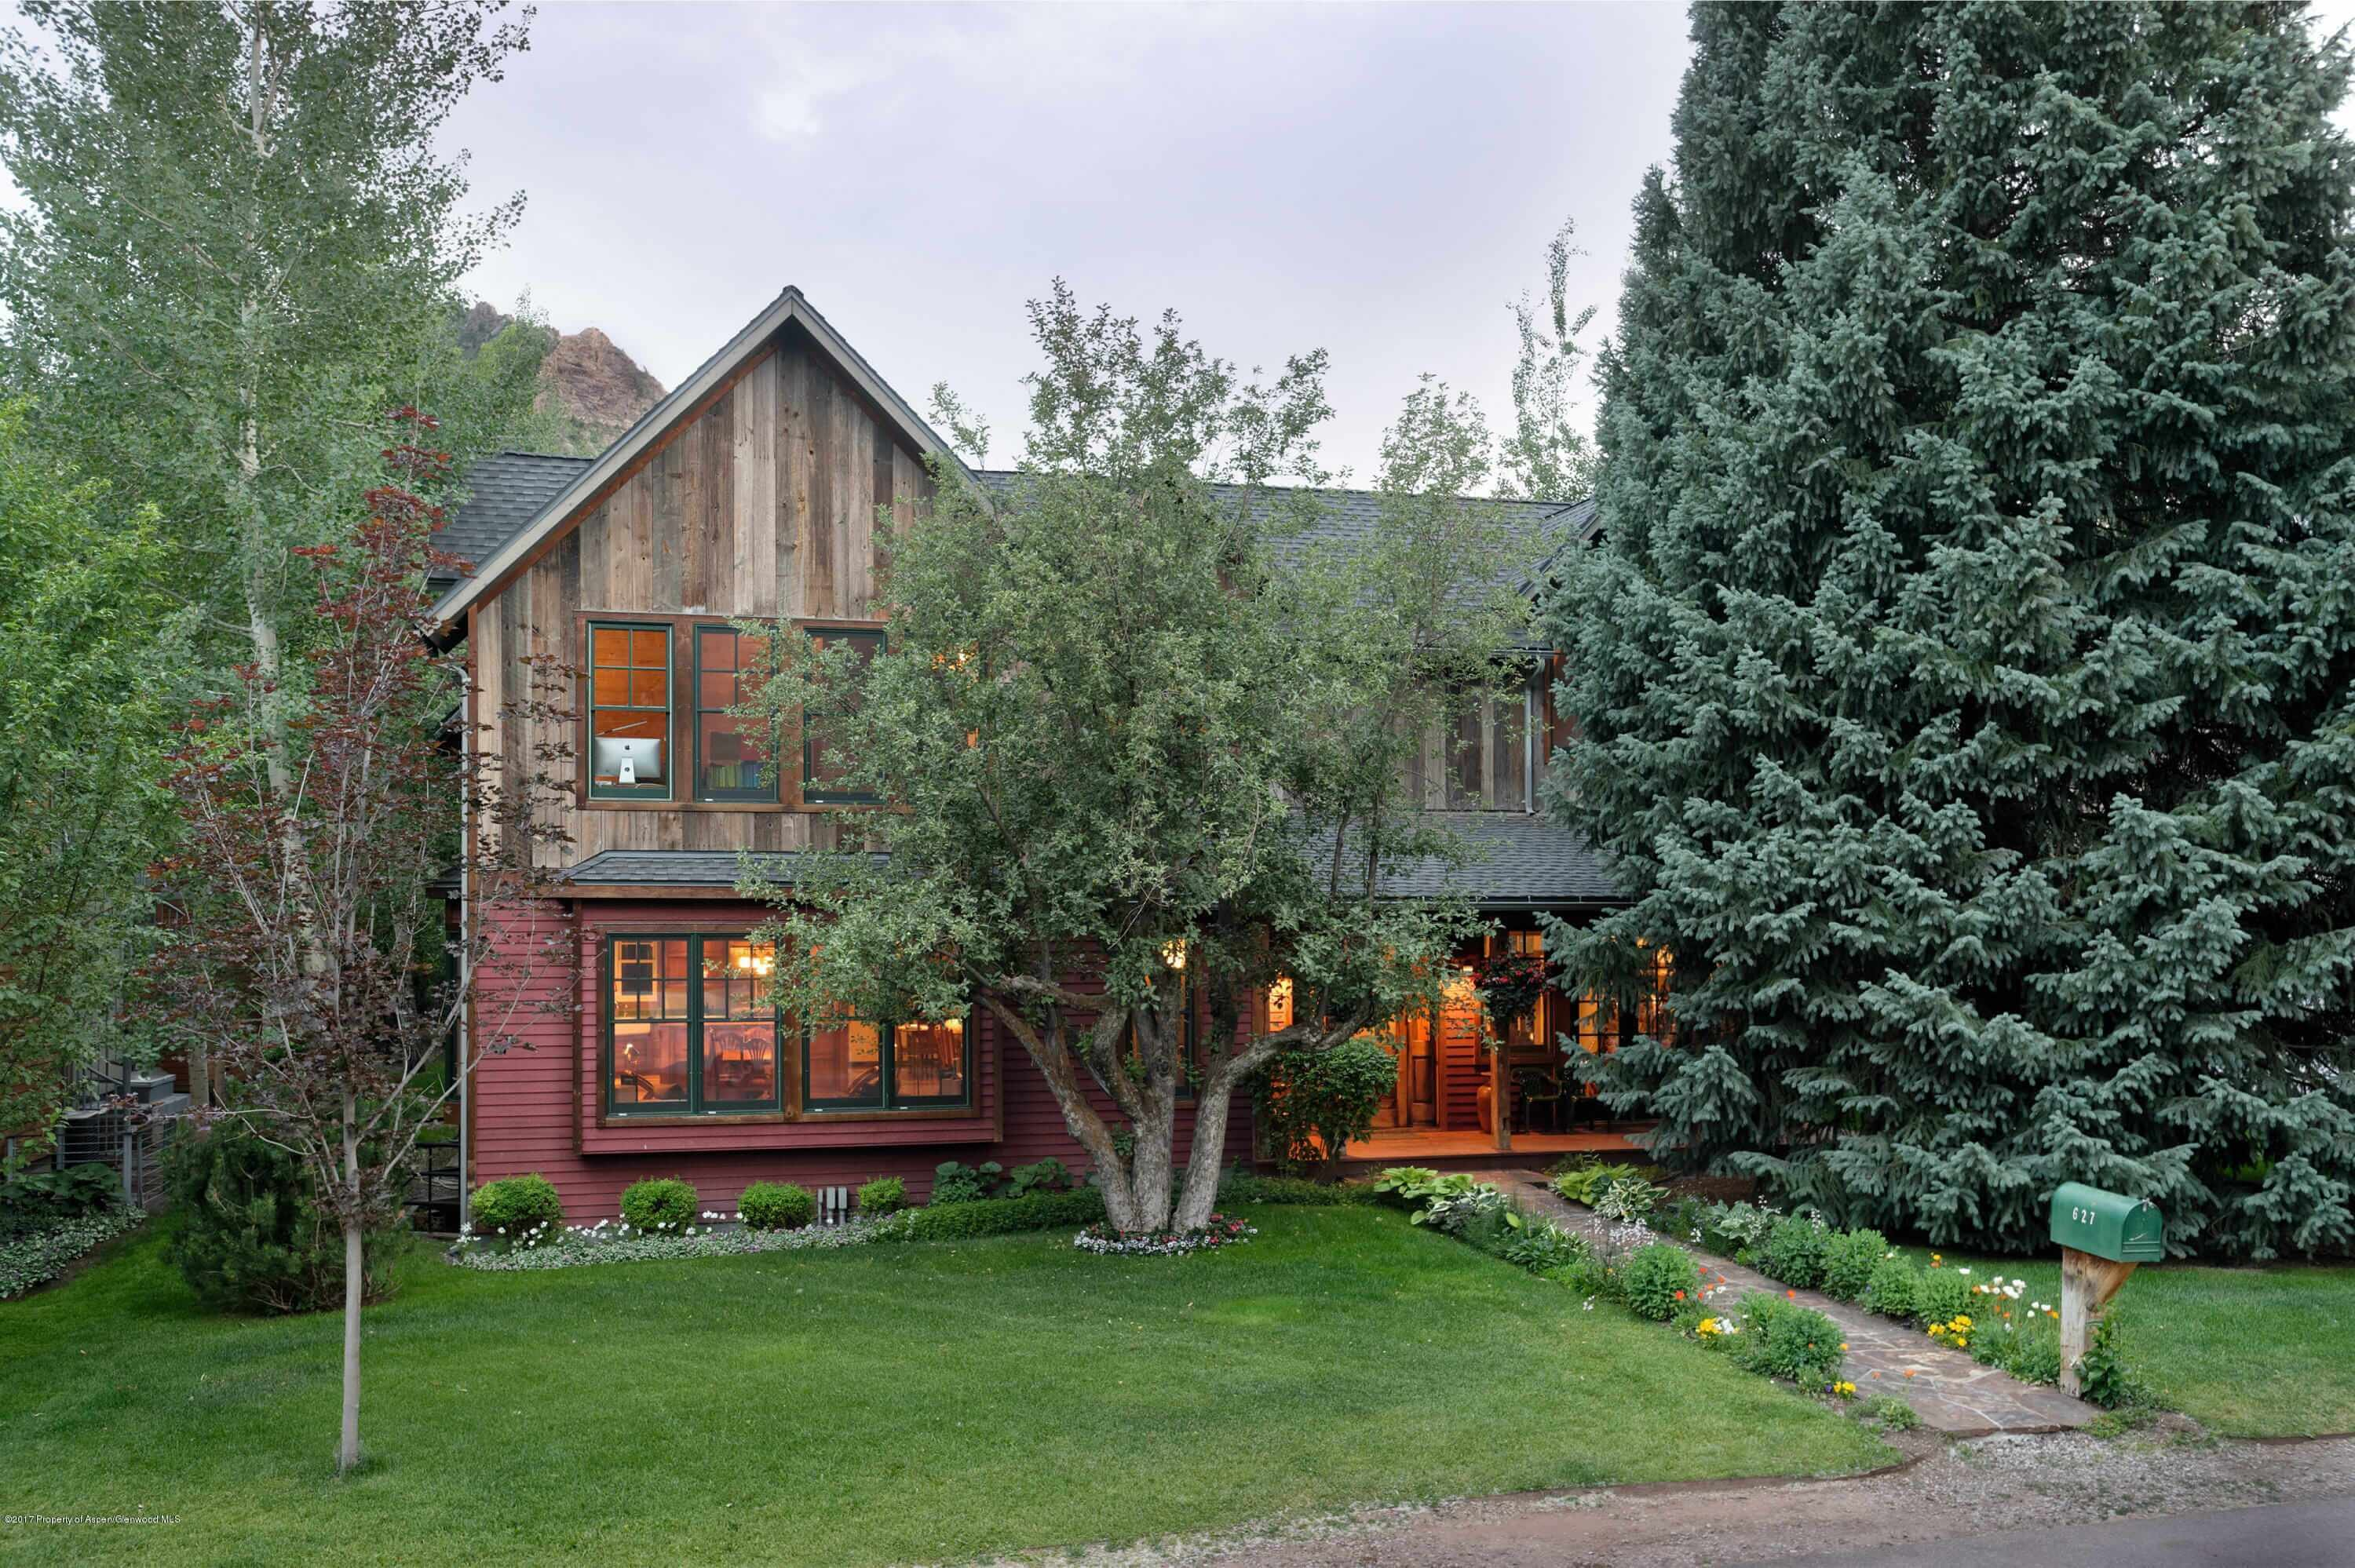 1998 Built West End Aspen Home Closes at $7.25M/$1,403 Sq Ft Unfurnished Image